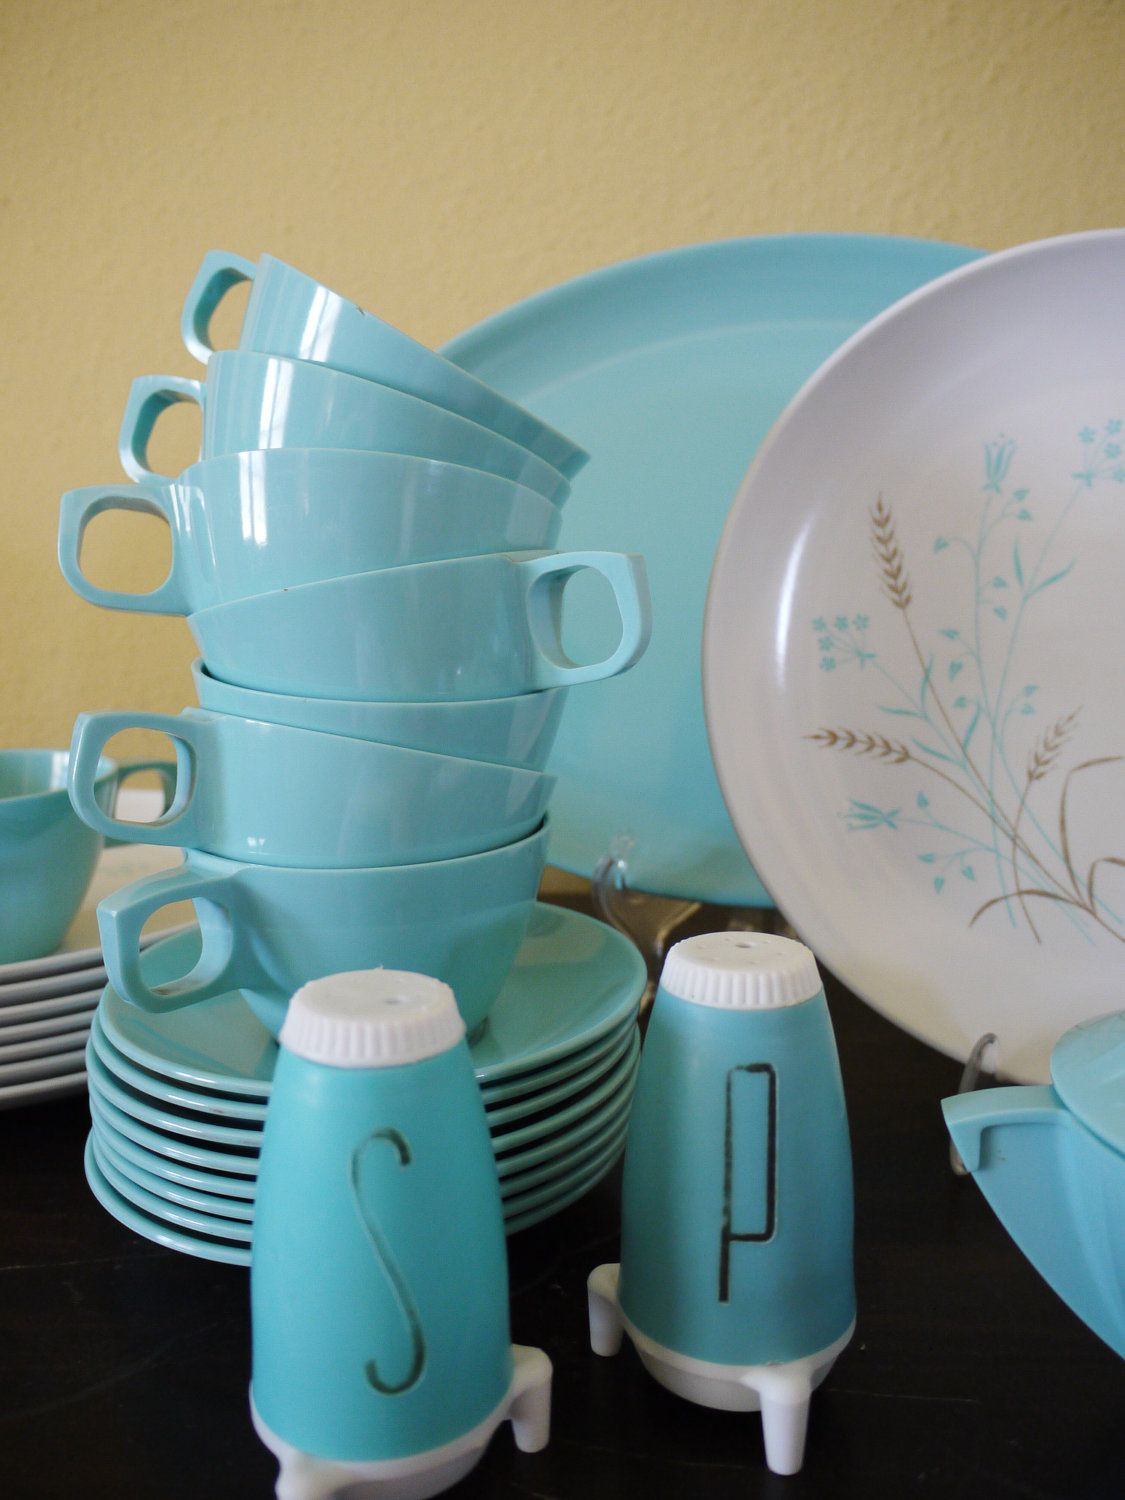 Atomic Age Retro Turquoise Mallo Ware Melmac Dinner Set for 8. My grandma had a & Atomic Age Retro Turquoise Mallo Ware Melmac Dinner Set for 8. My ...